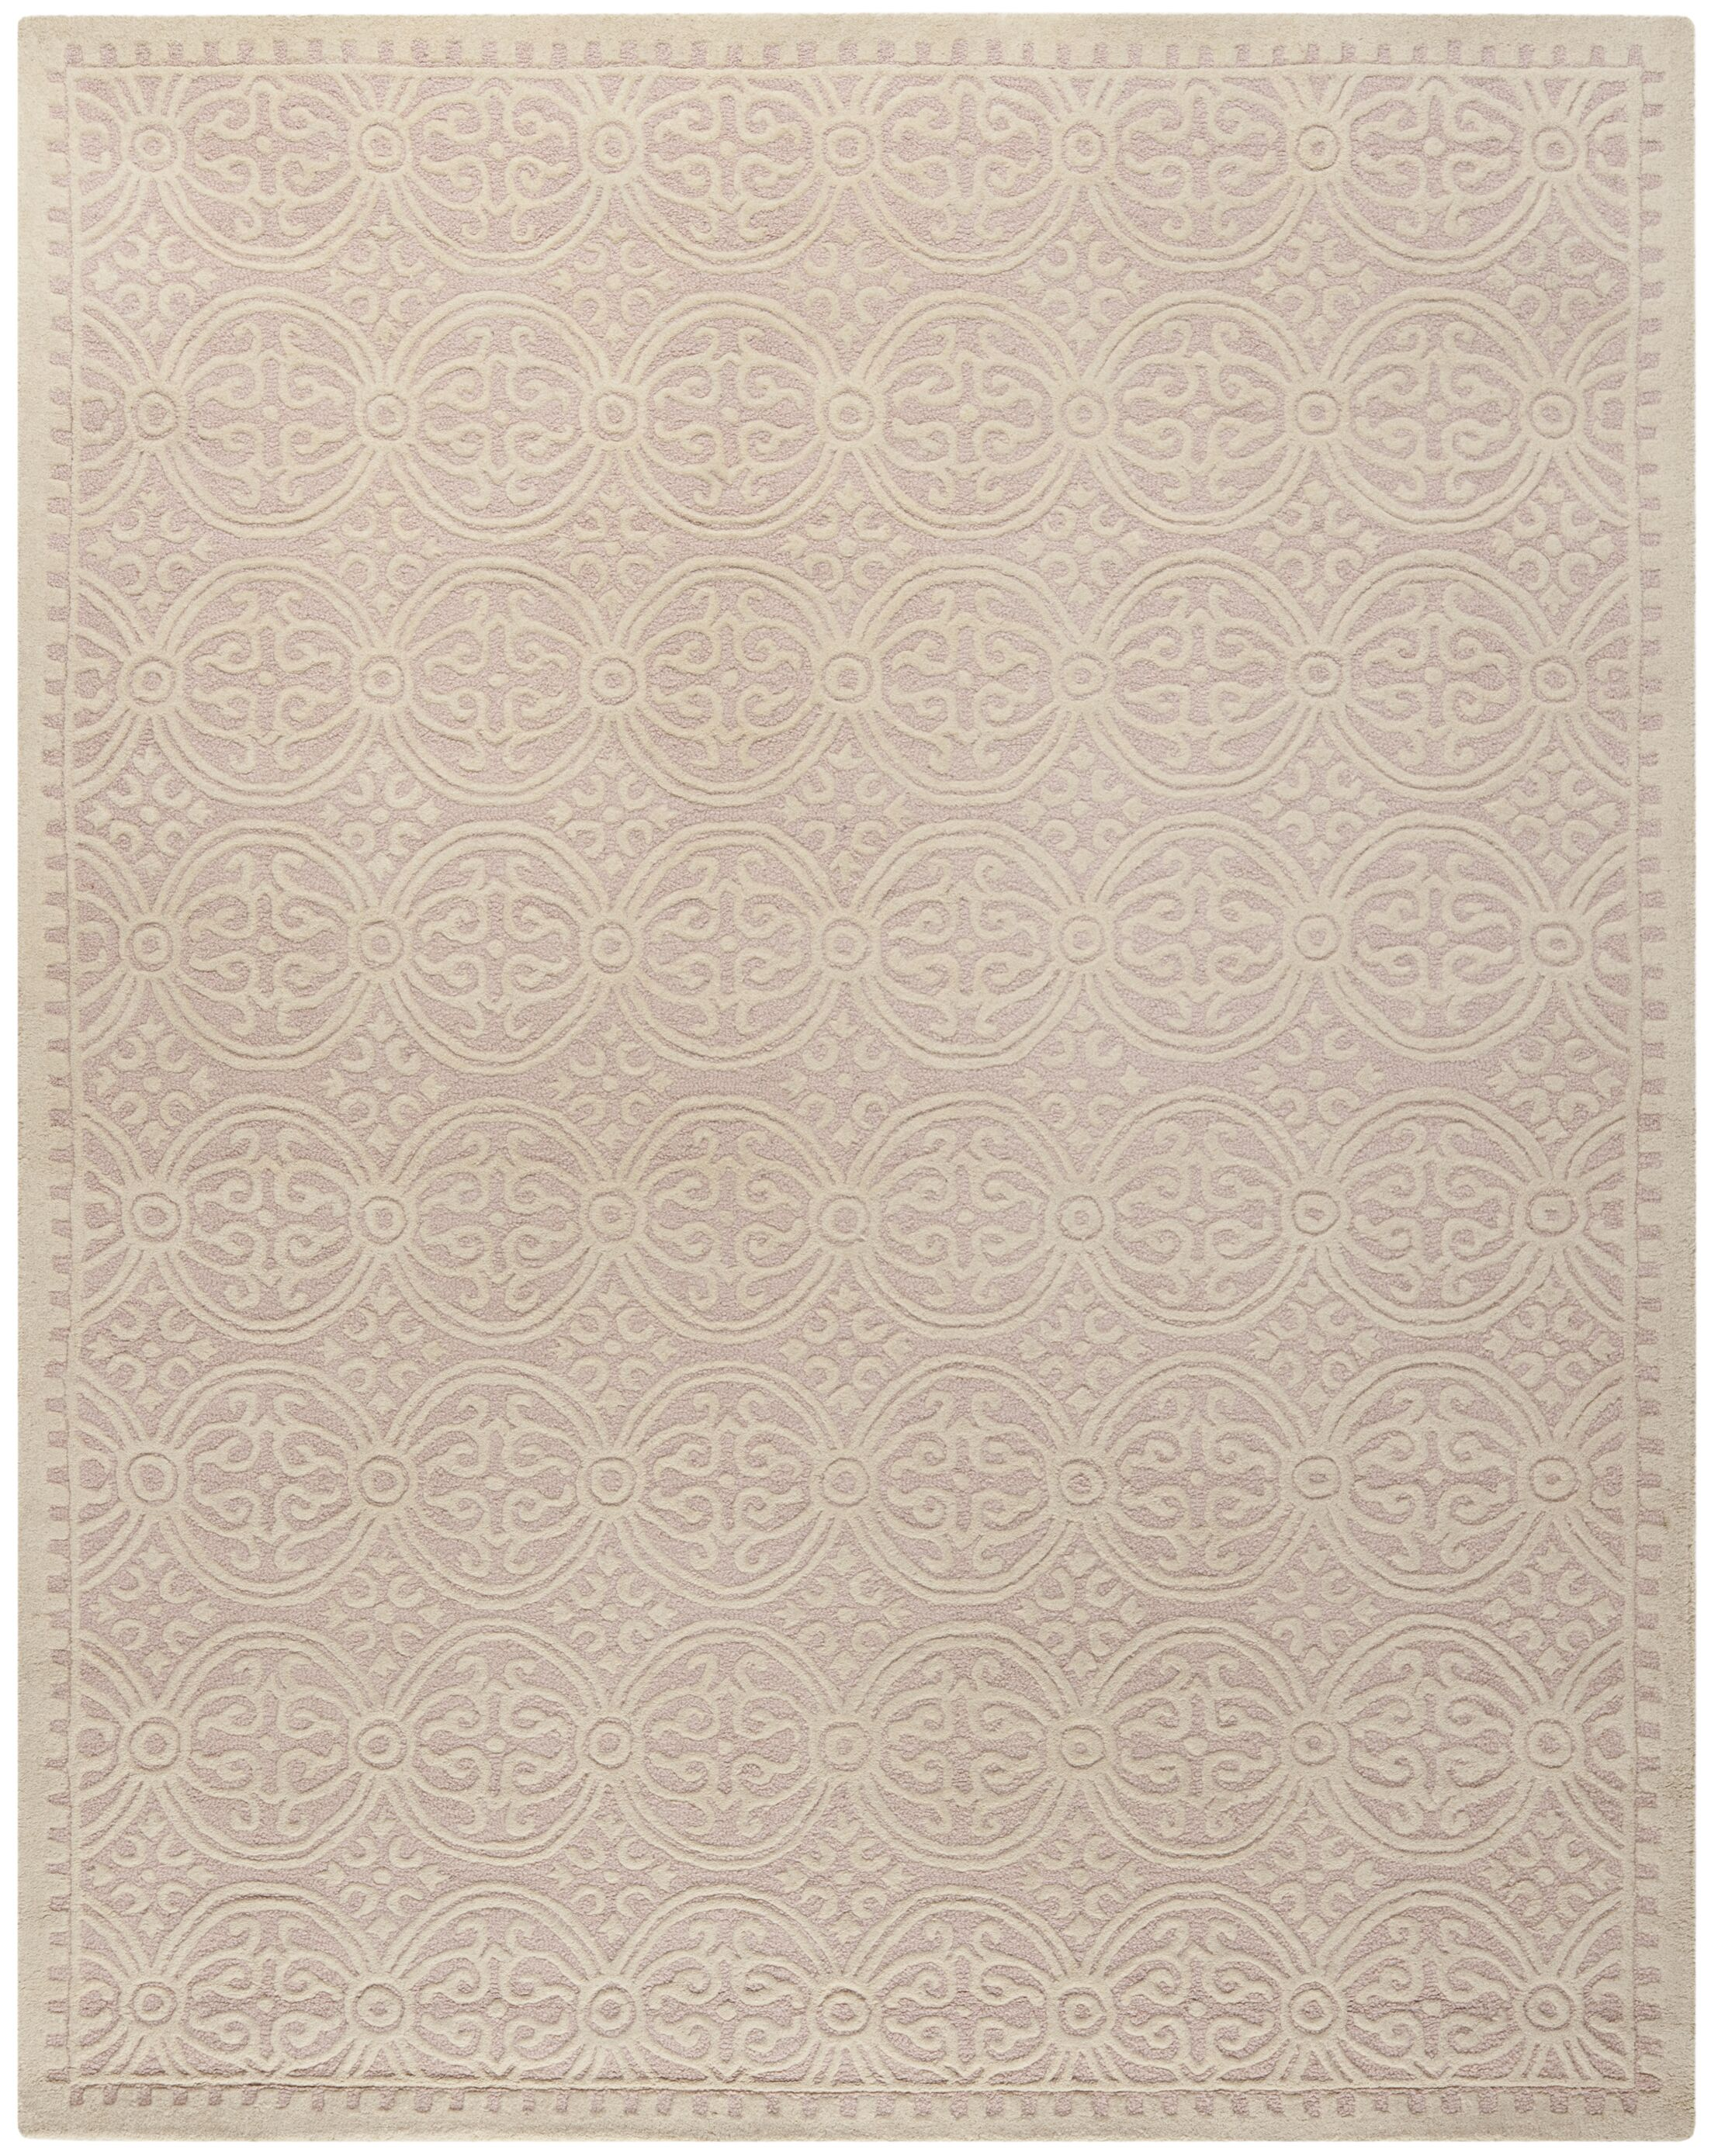 Charlenne Hand-Tufted Light Pink/Ivory Area Rug Rug Size: Rectangle 10' x 14'